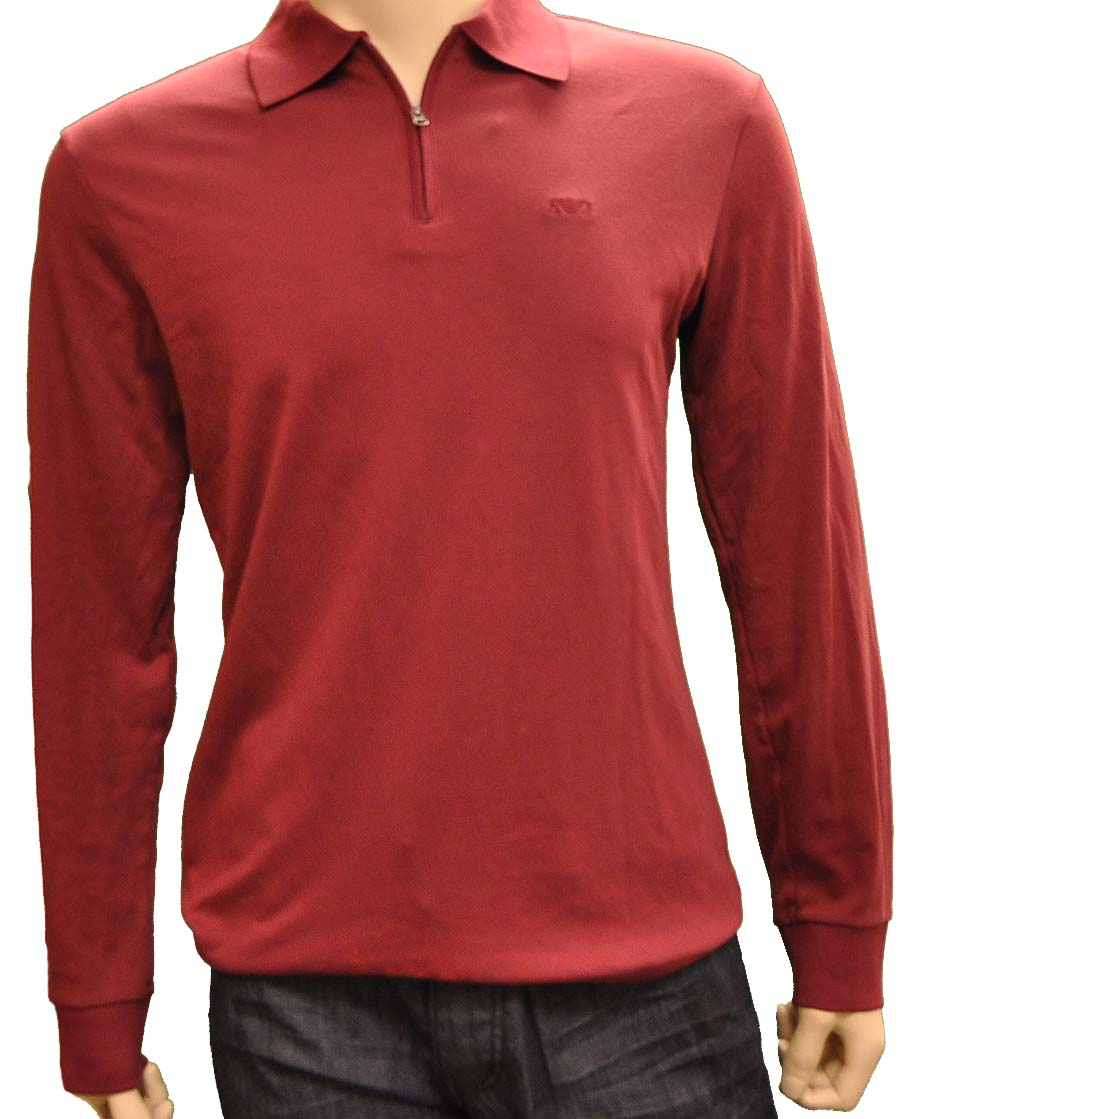 Armani Jeans RED Cotton Shirt